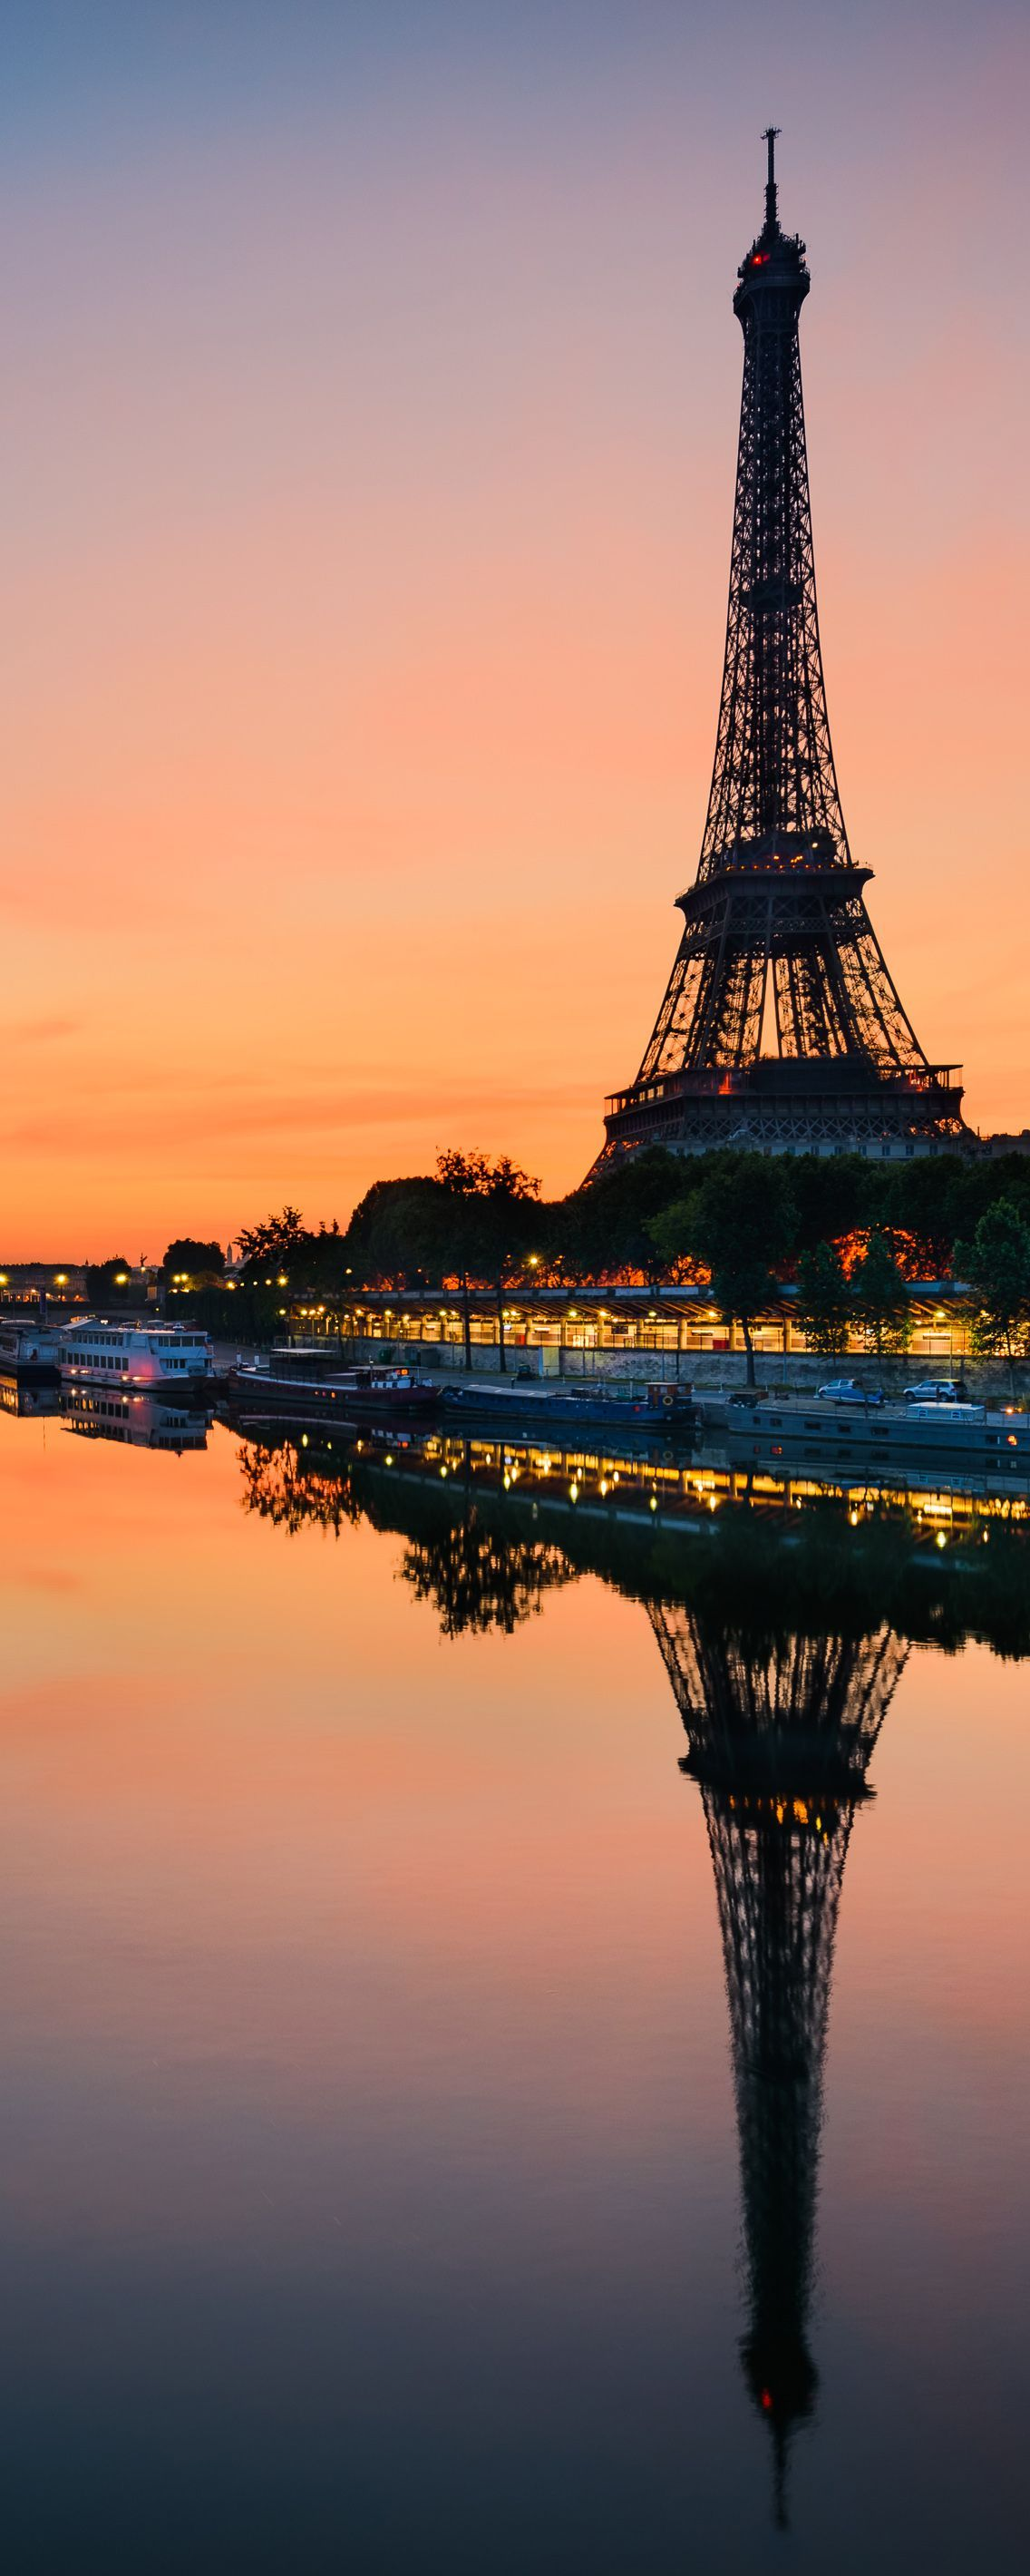 10 Breathtaking European Cities to Visit Before You Die #eiffeltower